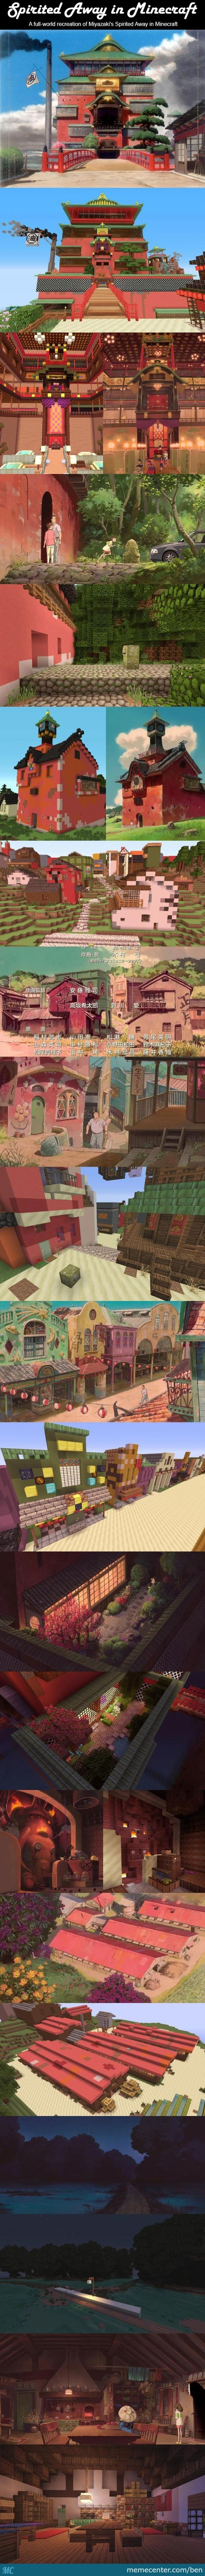 A Full-World Recreation Of Miyazaki's Spirited Away In Minecraft